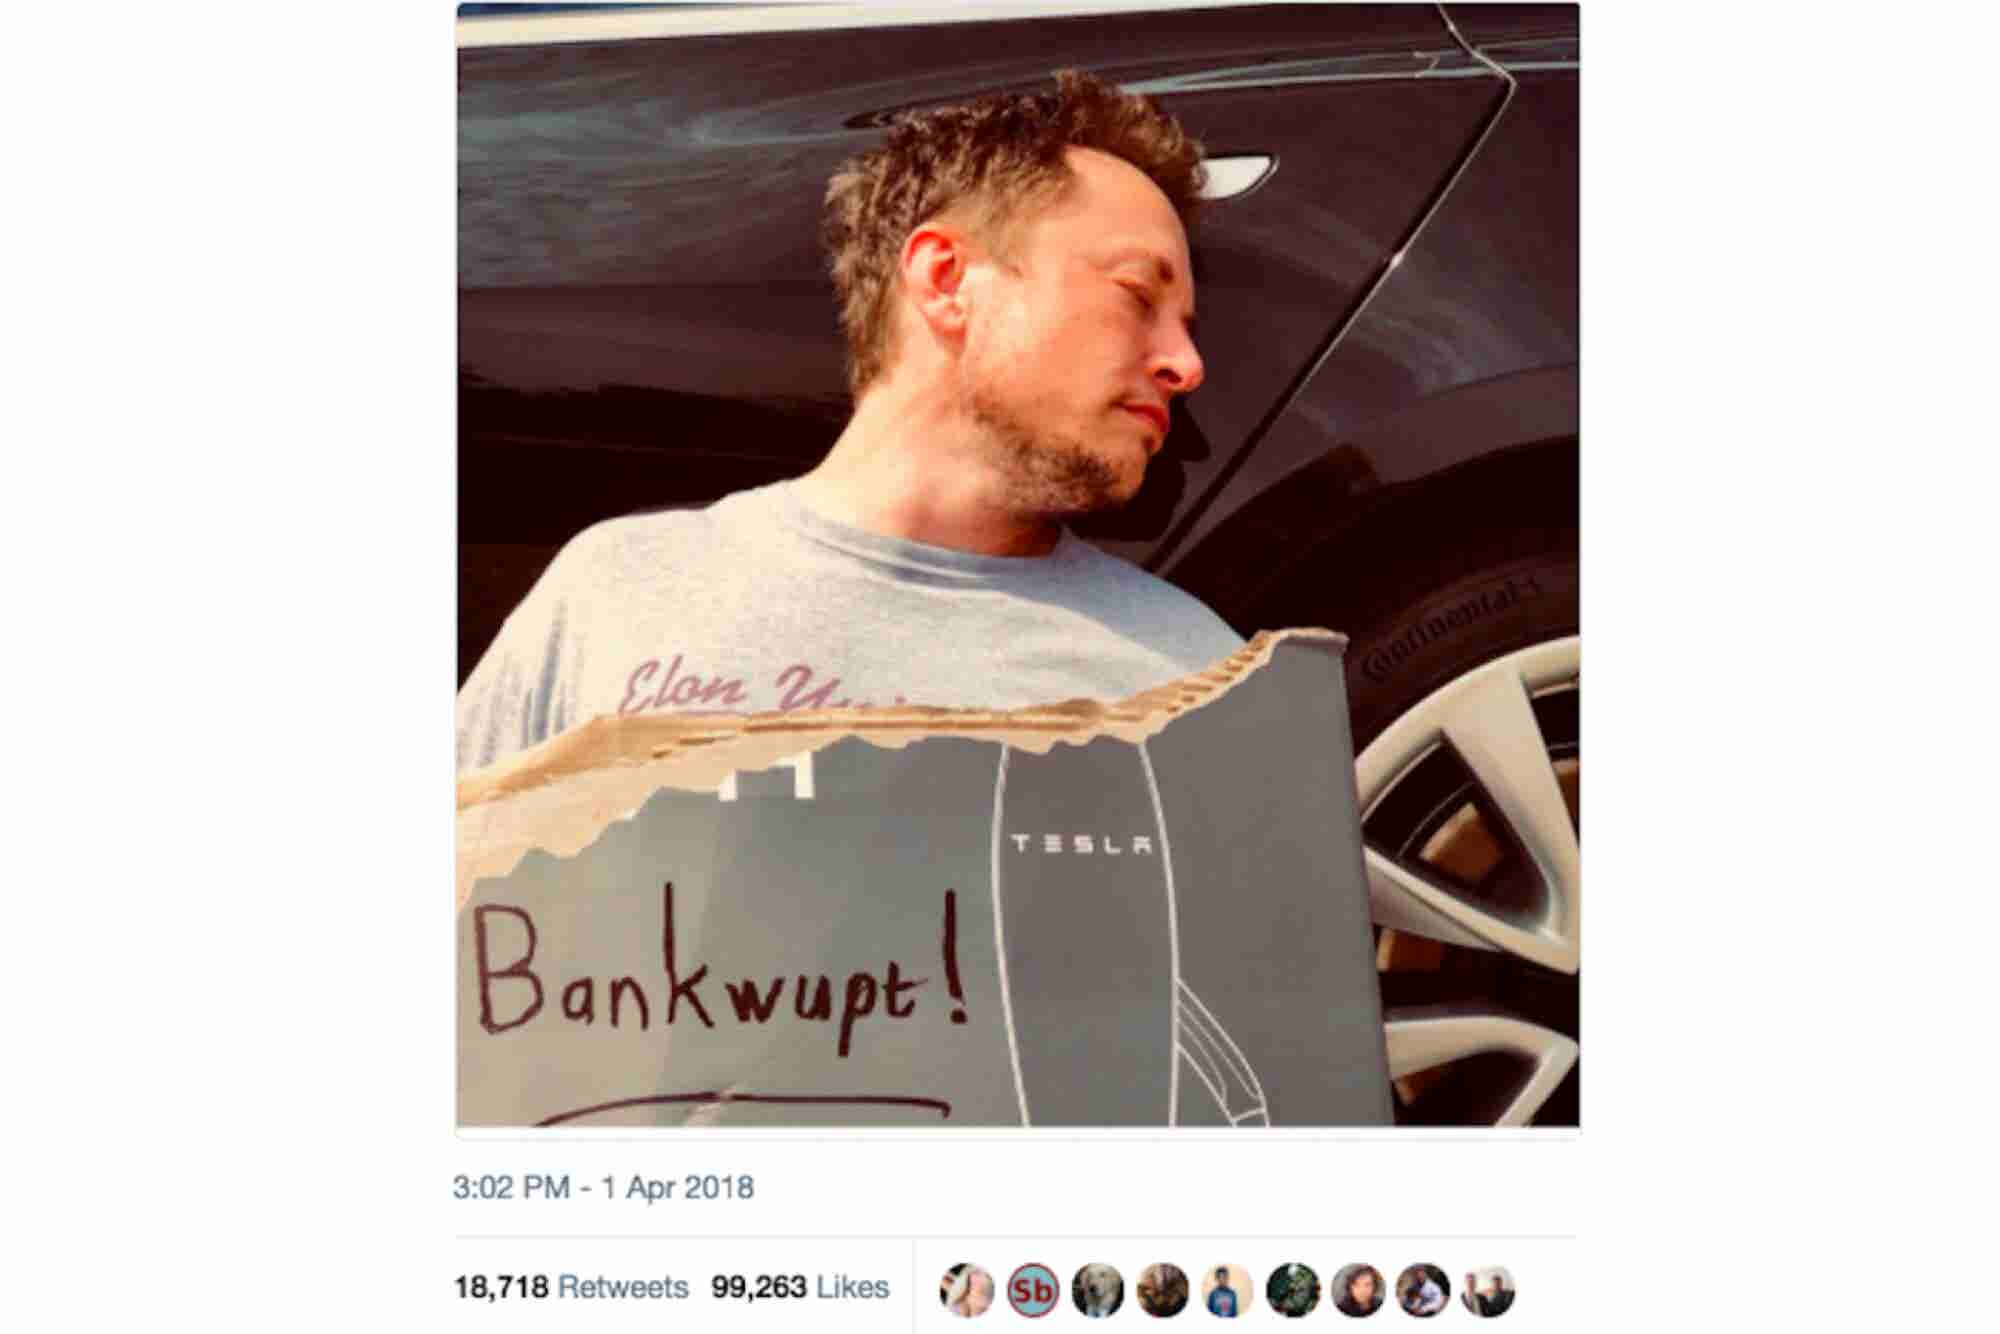 Elon Musk Jokes Tesla Is Bankrupt, and Other Great April Fool's Day Pranks